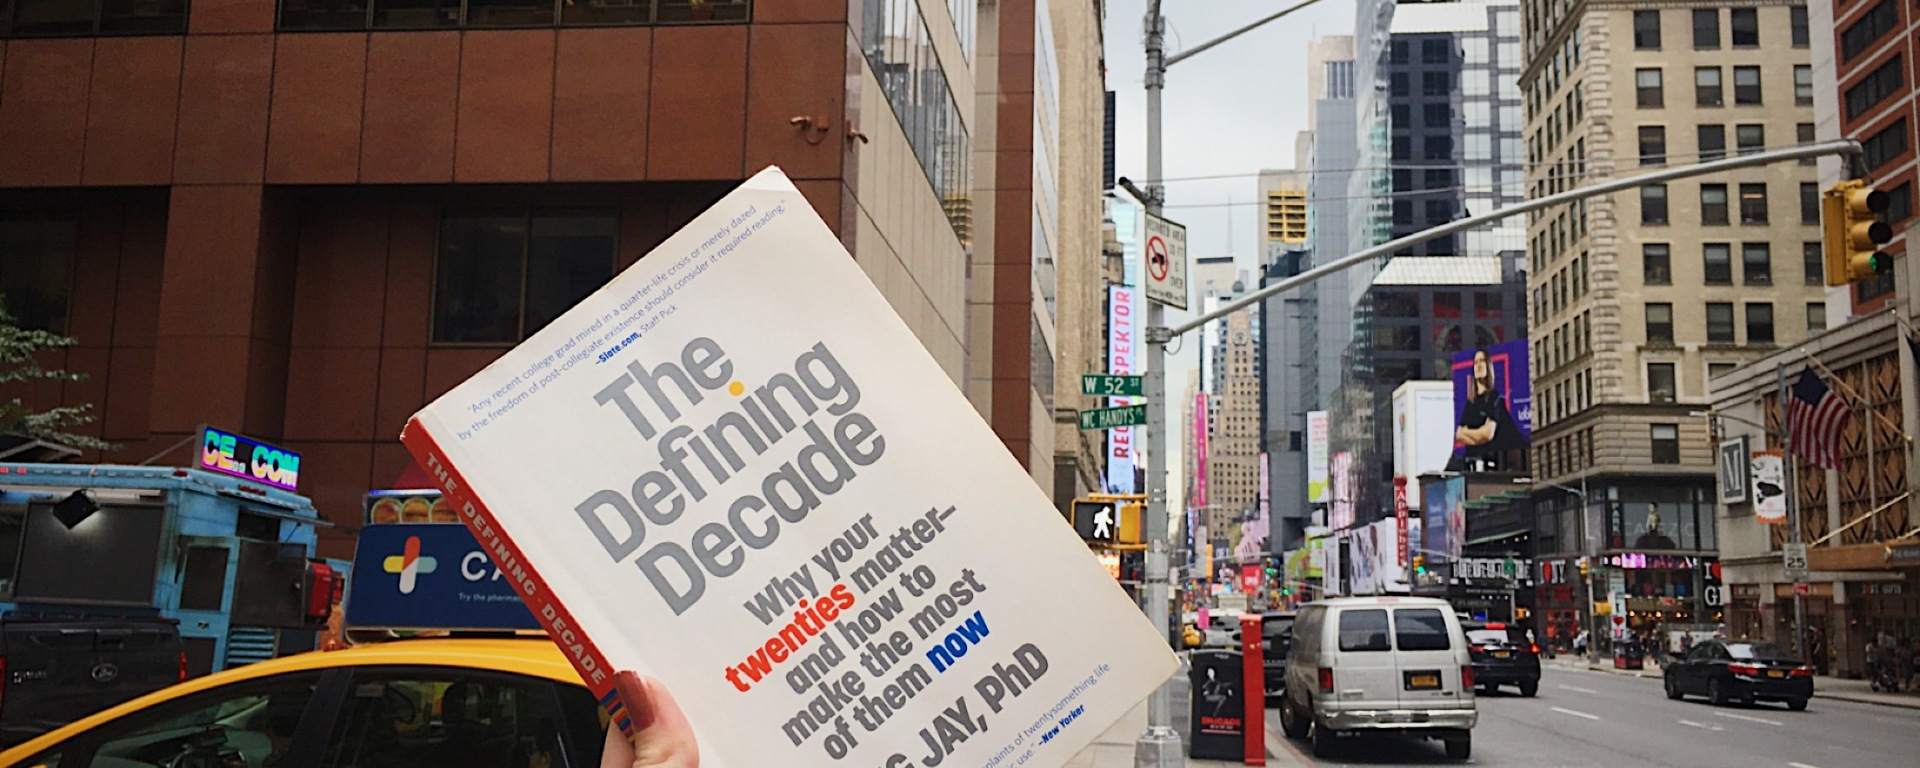 "A copy of ""The Defining Decade"" by Dr. Meg Jay held up from a New York street against Times Square buildings."